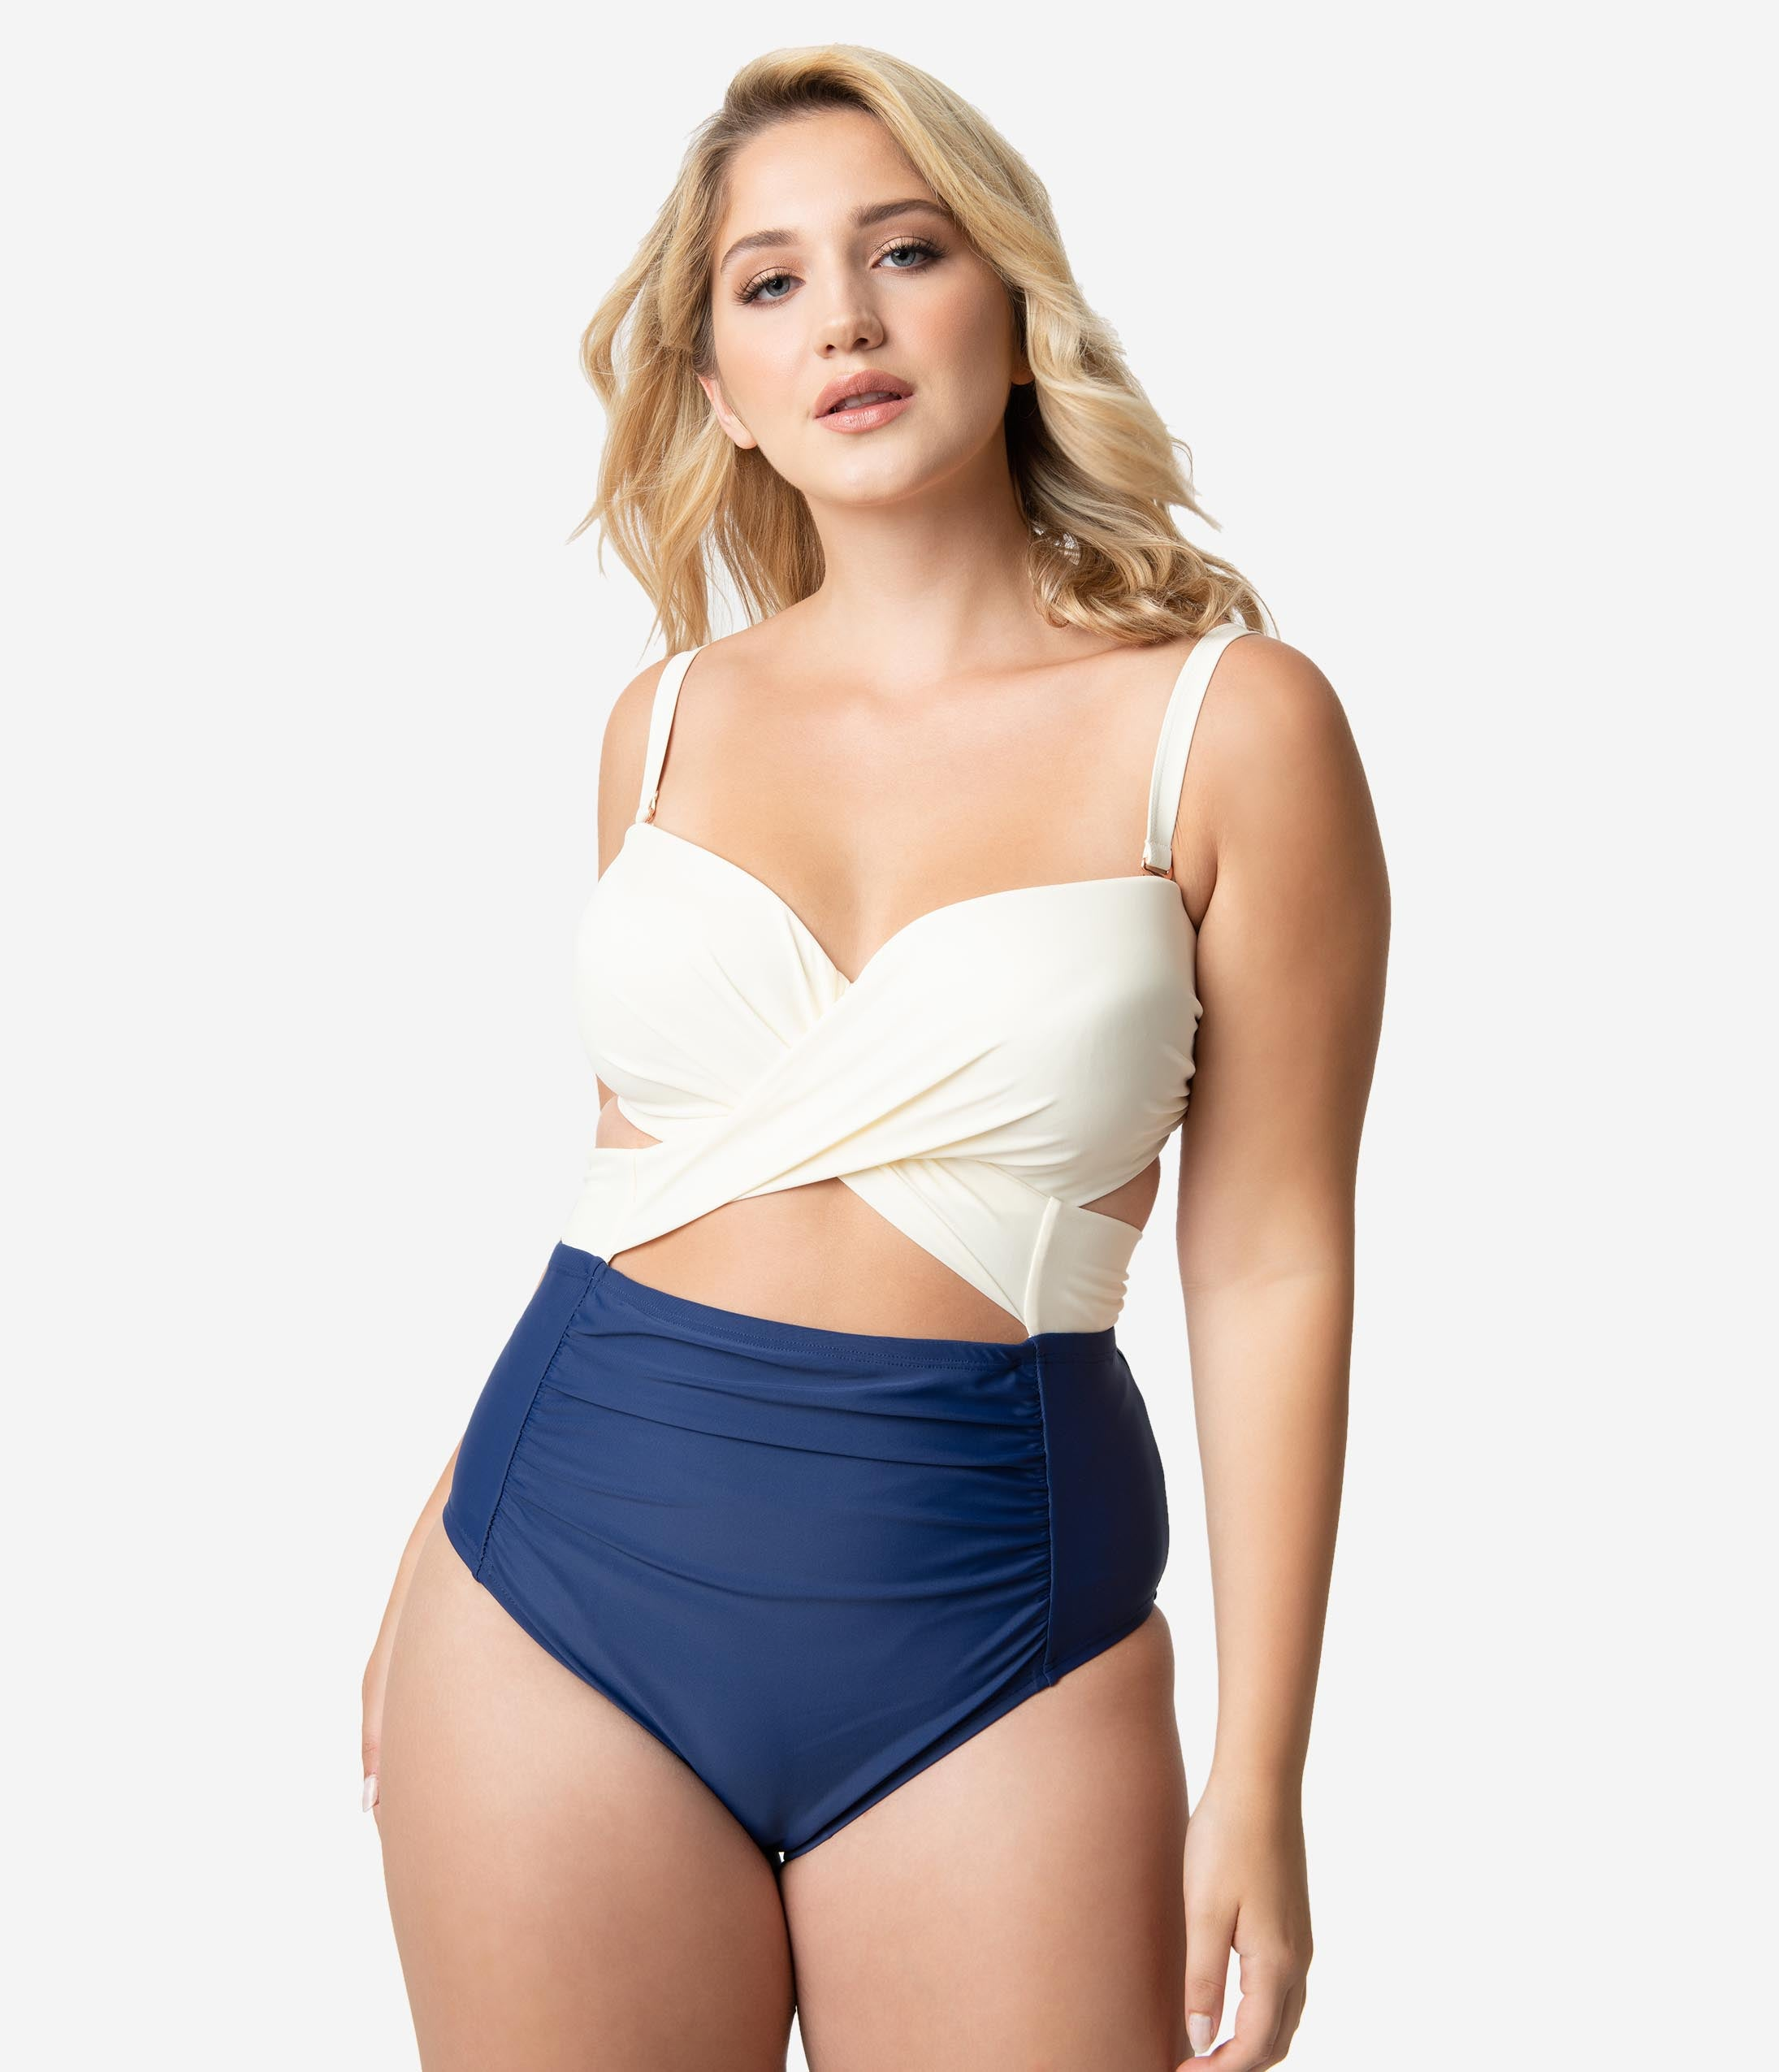 6f2a5a778e 1950s Bathing Suits, Swimsuits History Plus Size Navy Ivory Cross Wrap  Carly One Piece Swimsuit